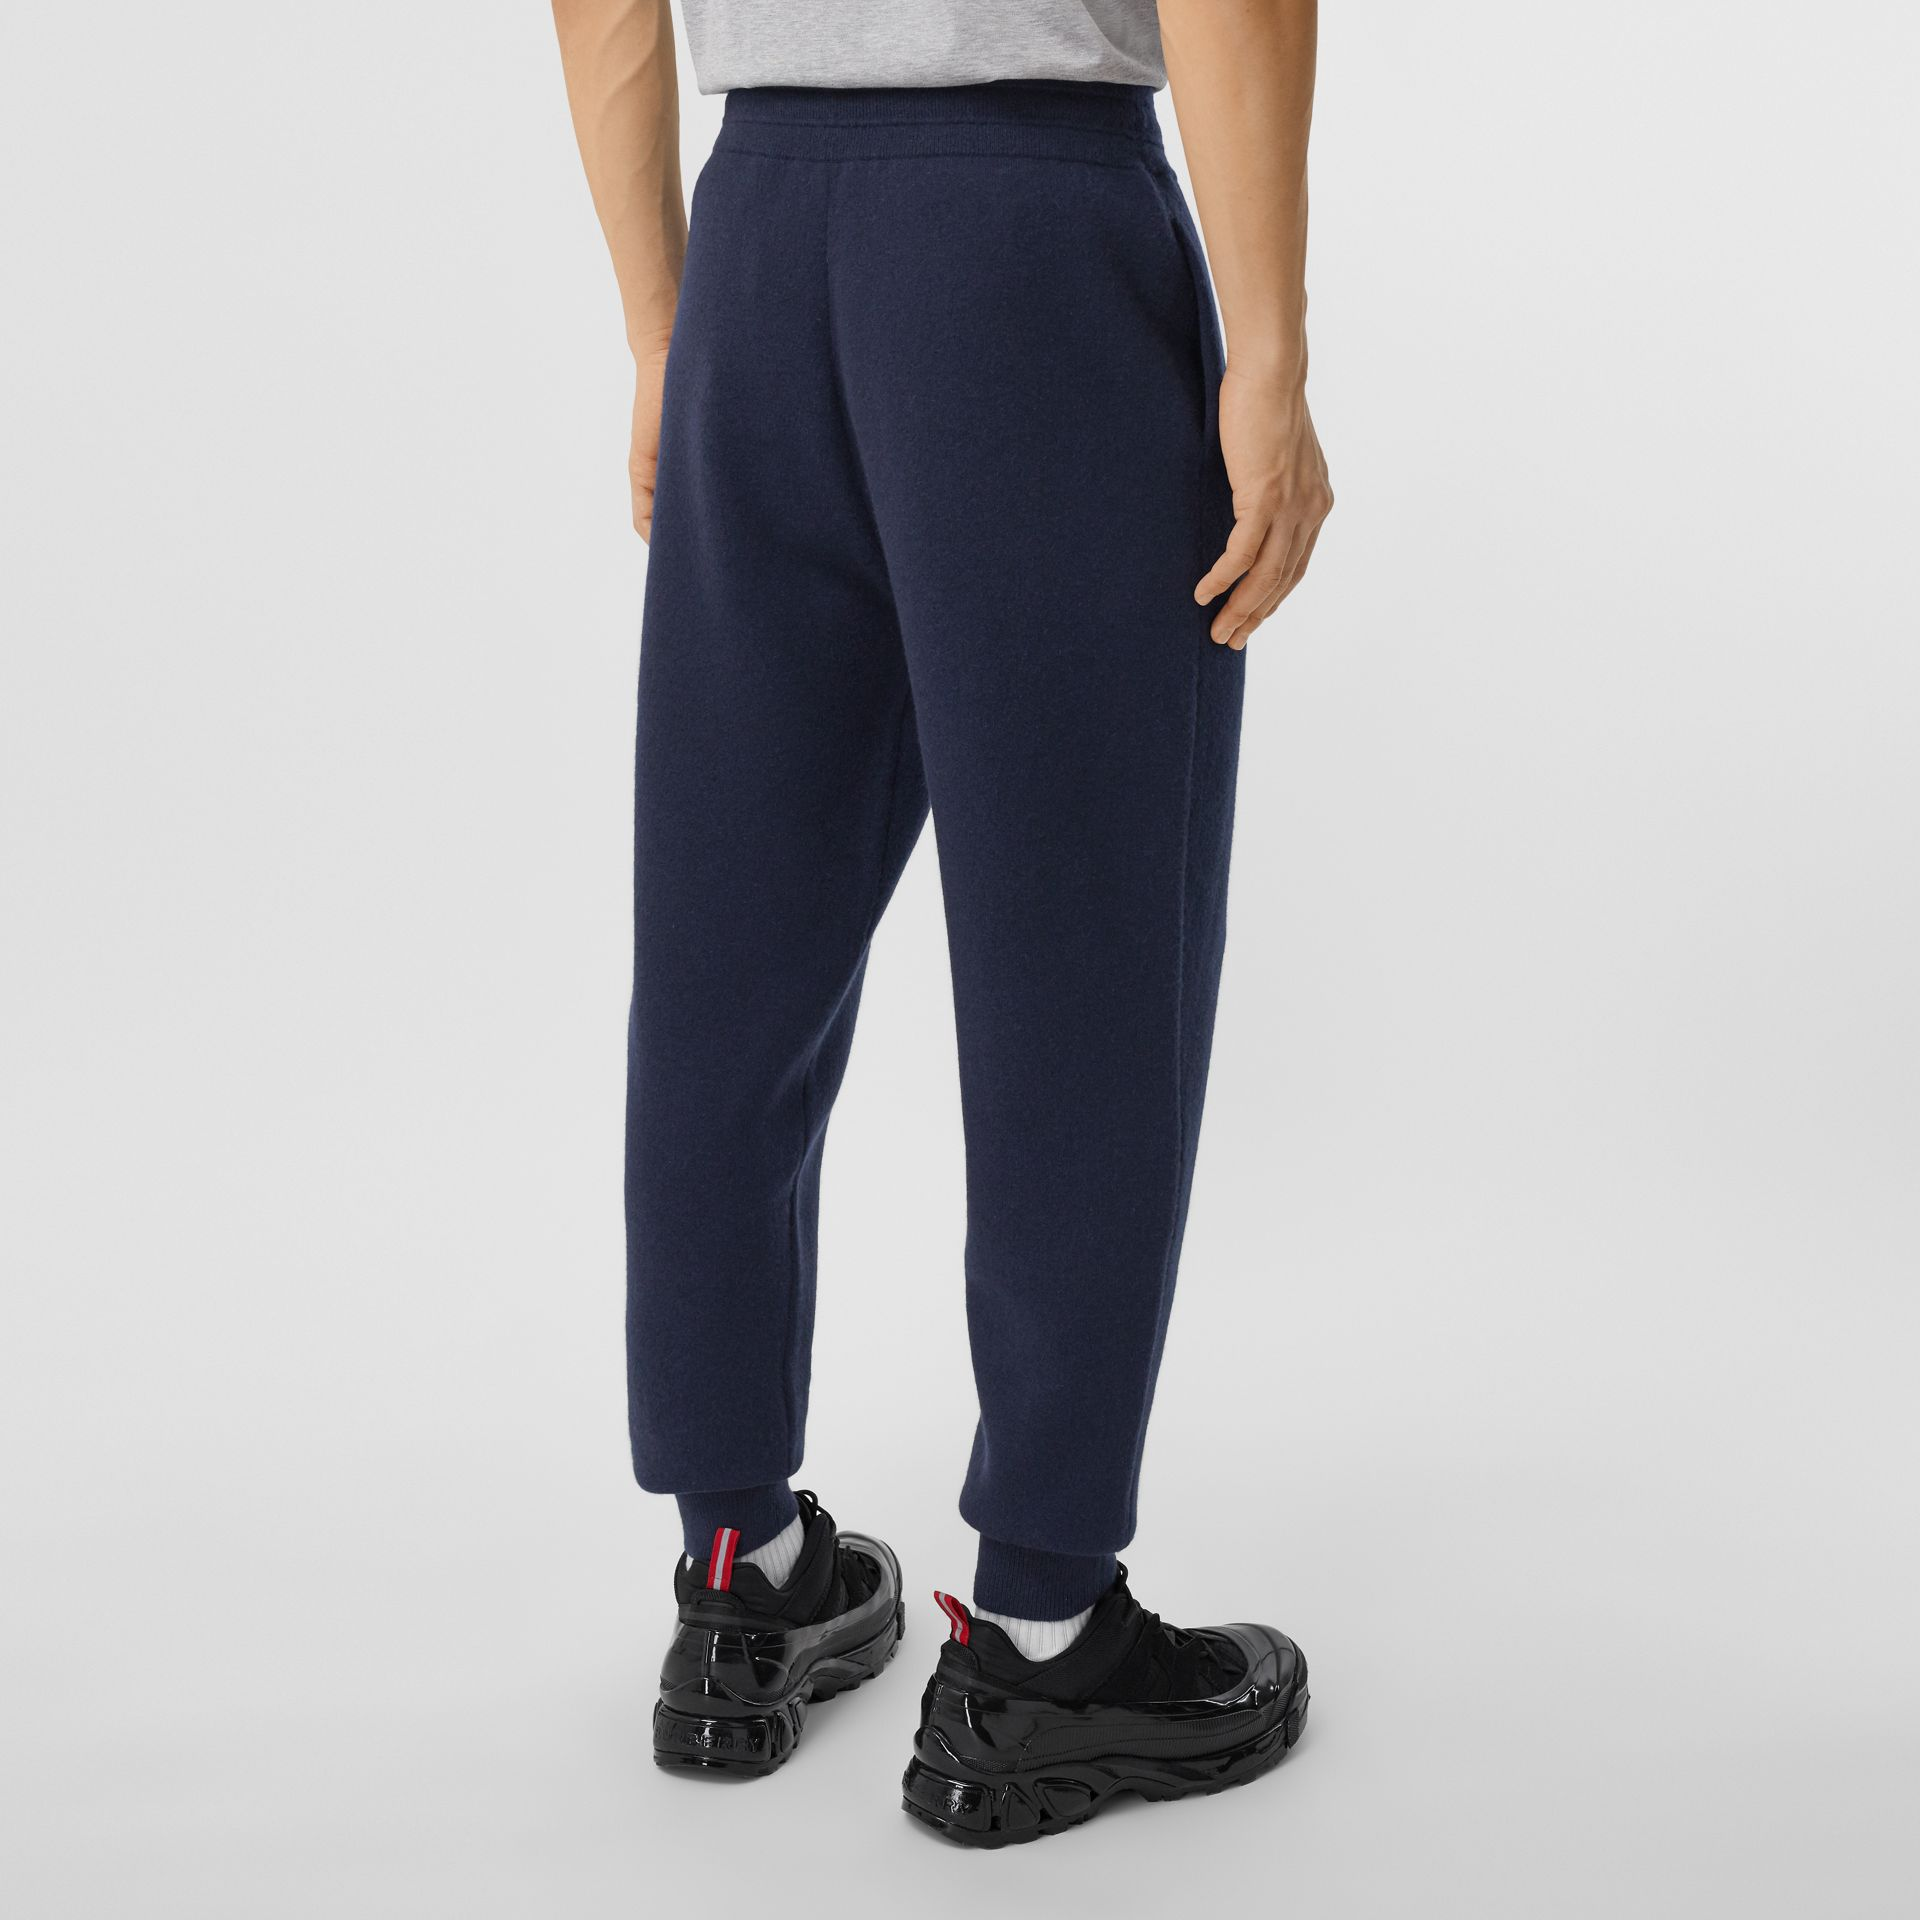 Monogram Motif Cashmere Blend Jogging Pants in Navy - Men | Burberry - gallery image 2